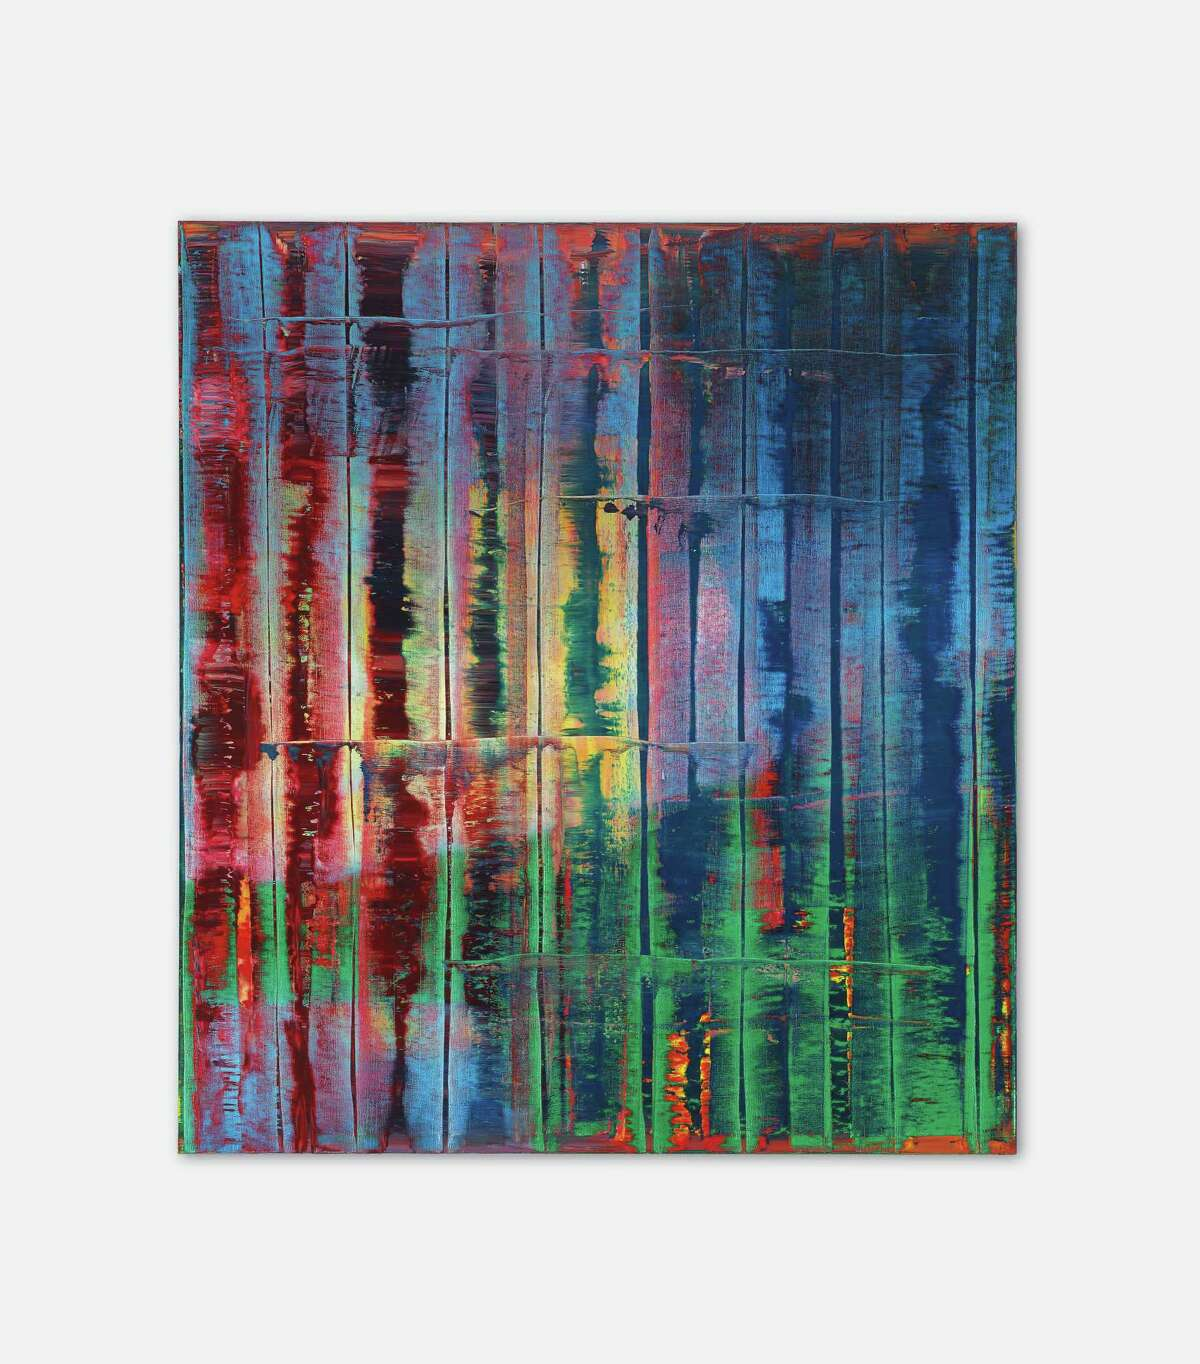 The Linda Pace Foundation sold a painting from its collection by German abstract painter Gerhard Richter for $XX at a Christie's auction in New York Nov. 12. Proceeds from the sale of